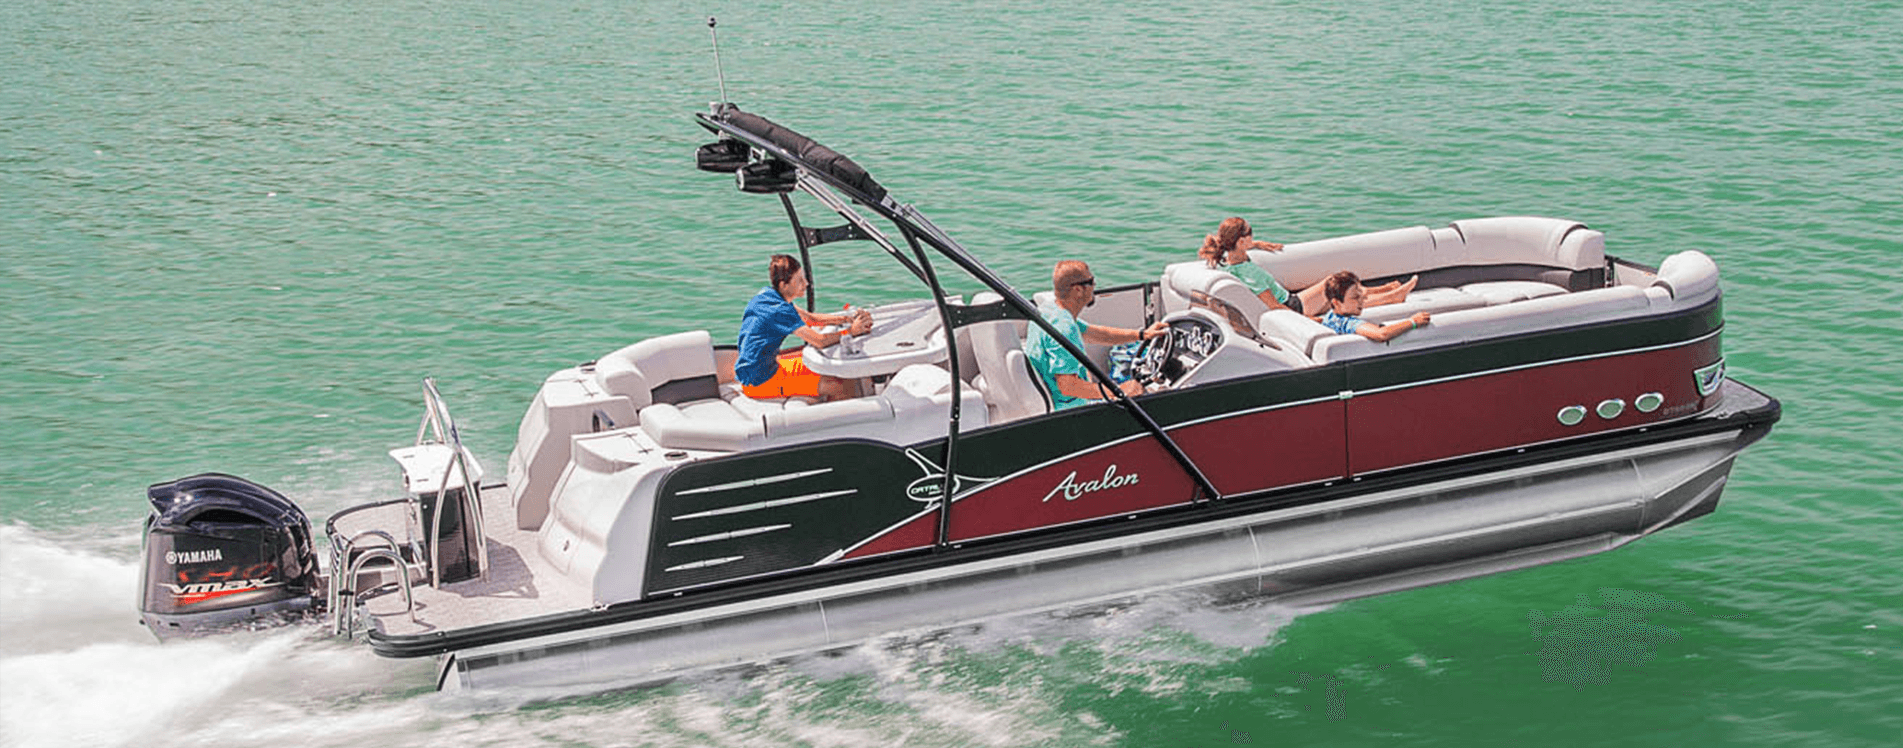 Avalon pontoon boats for sale | Johnson marine